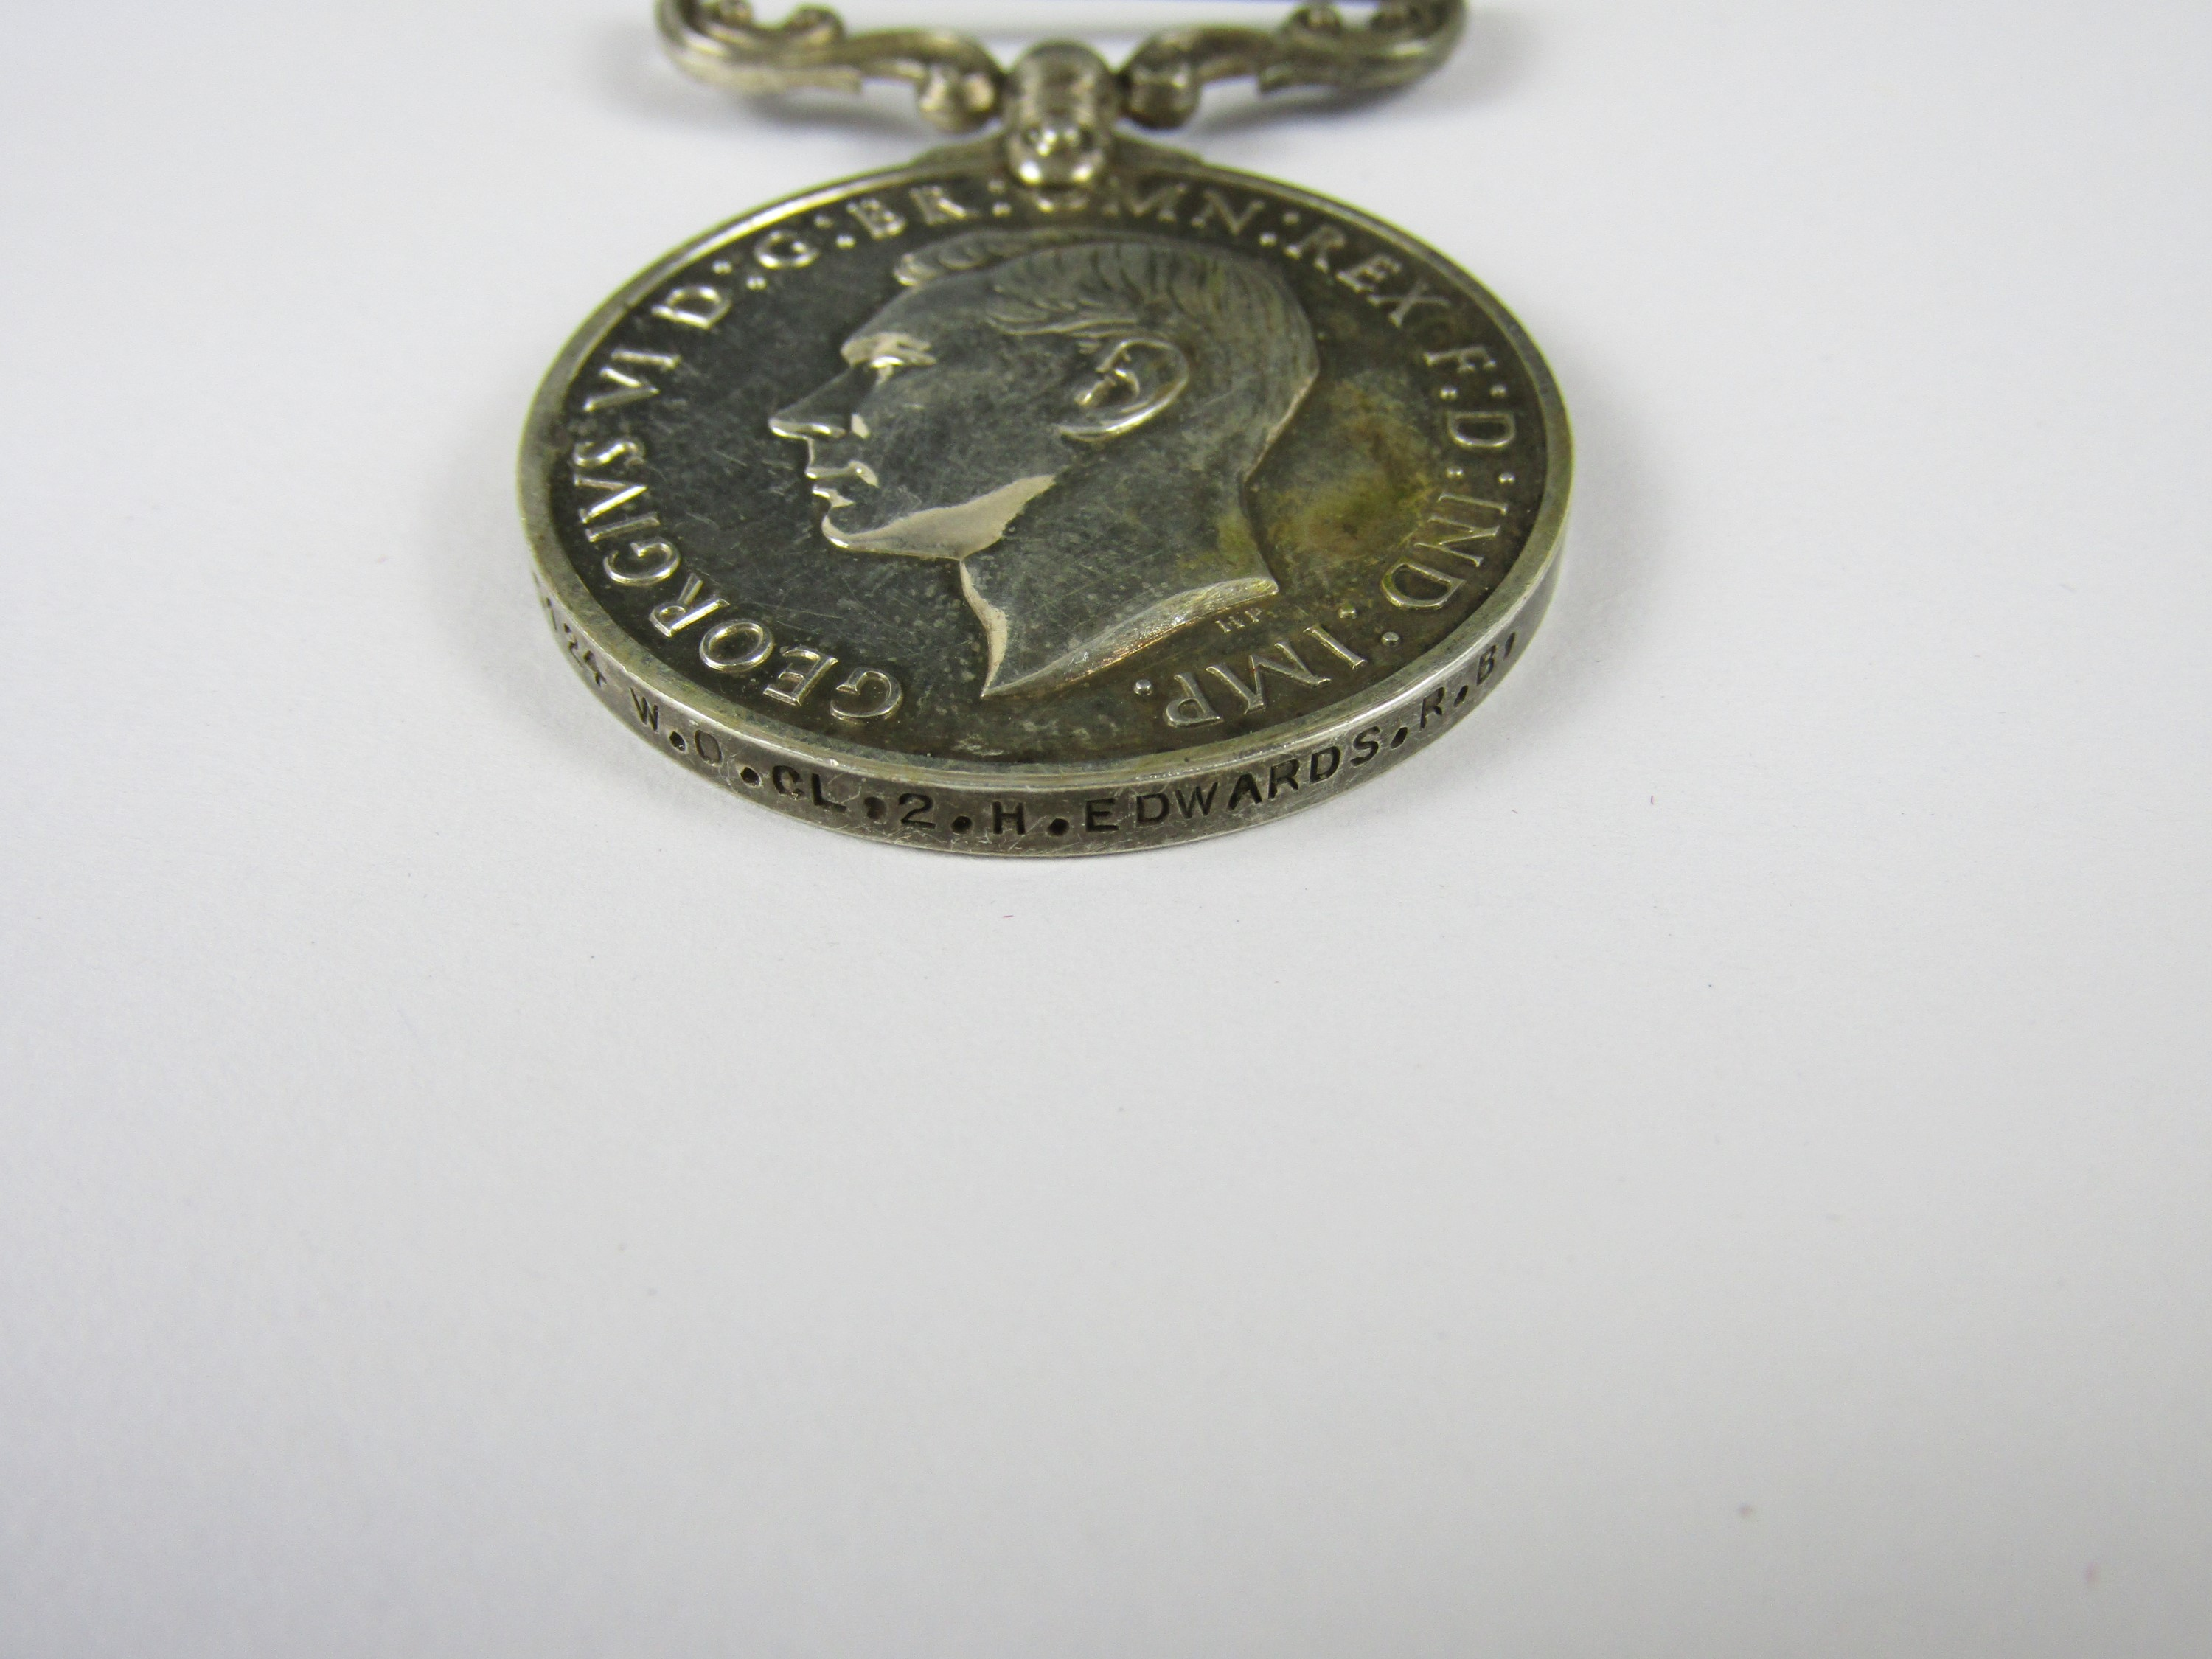 Lot 24 - A George VI Meritorious Service Medal (1937-48) to 6905124 W O CL 2, H Edwards, Rifle Brigade